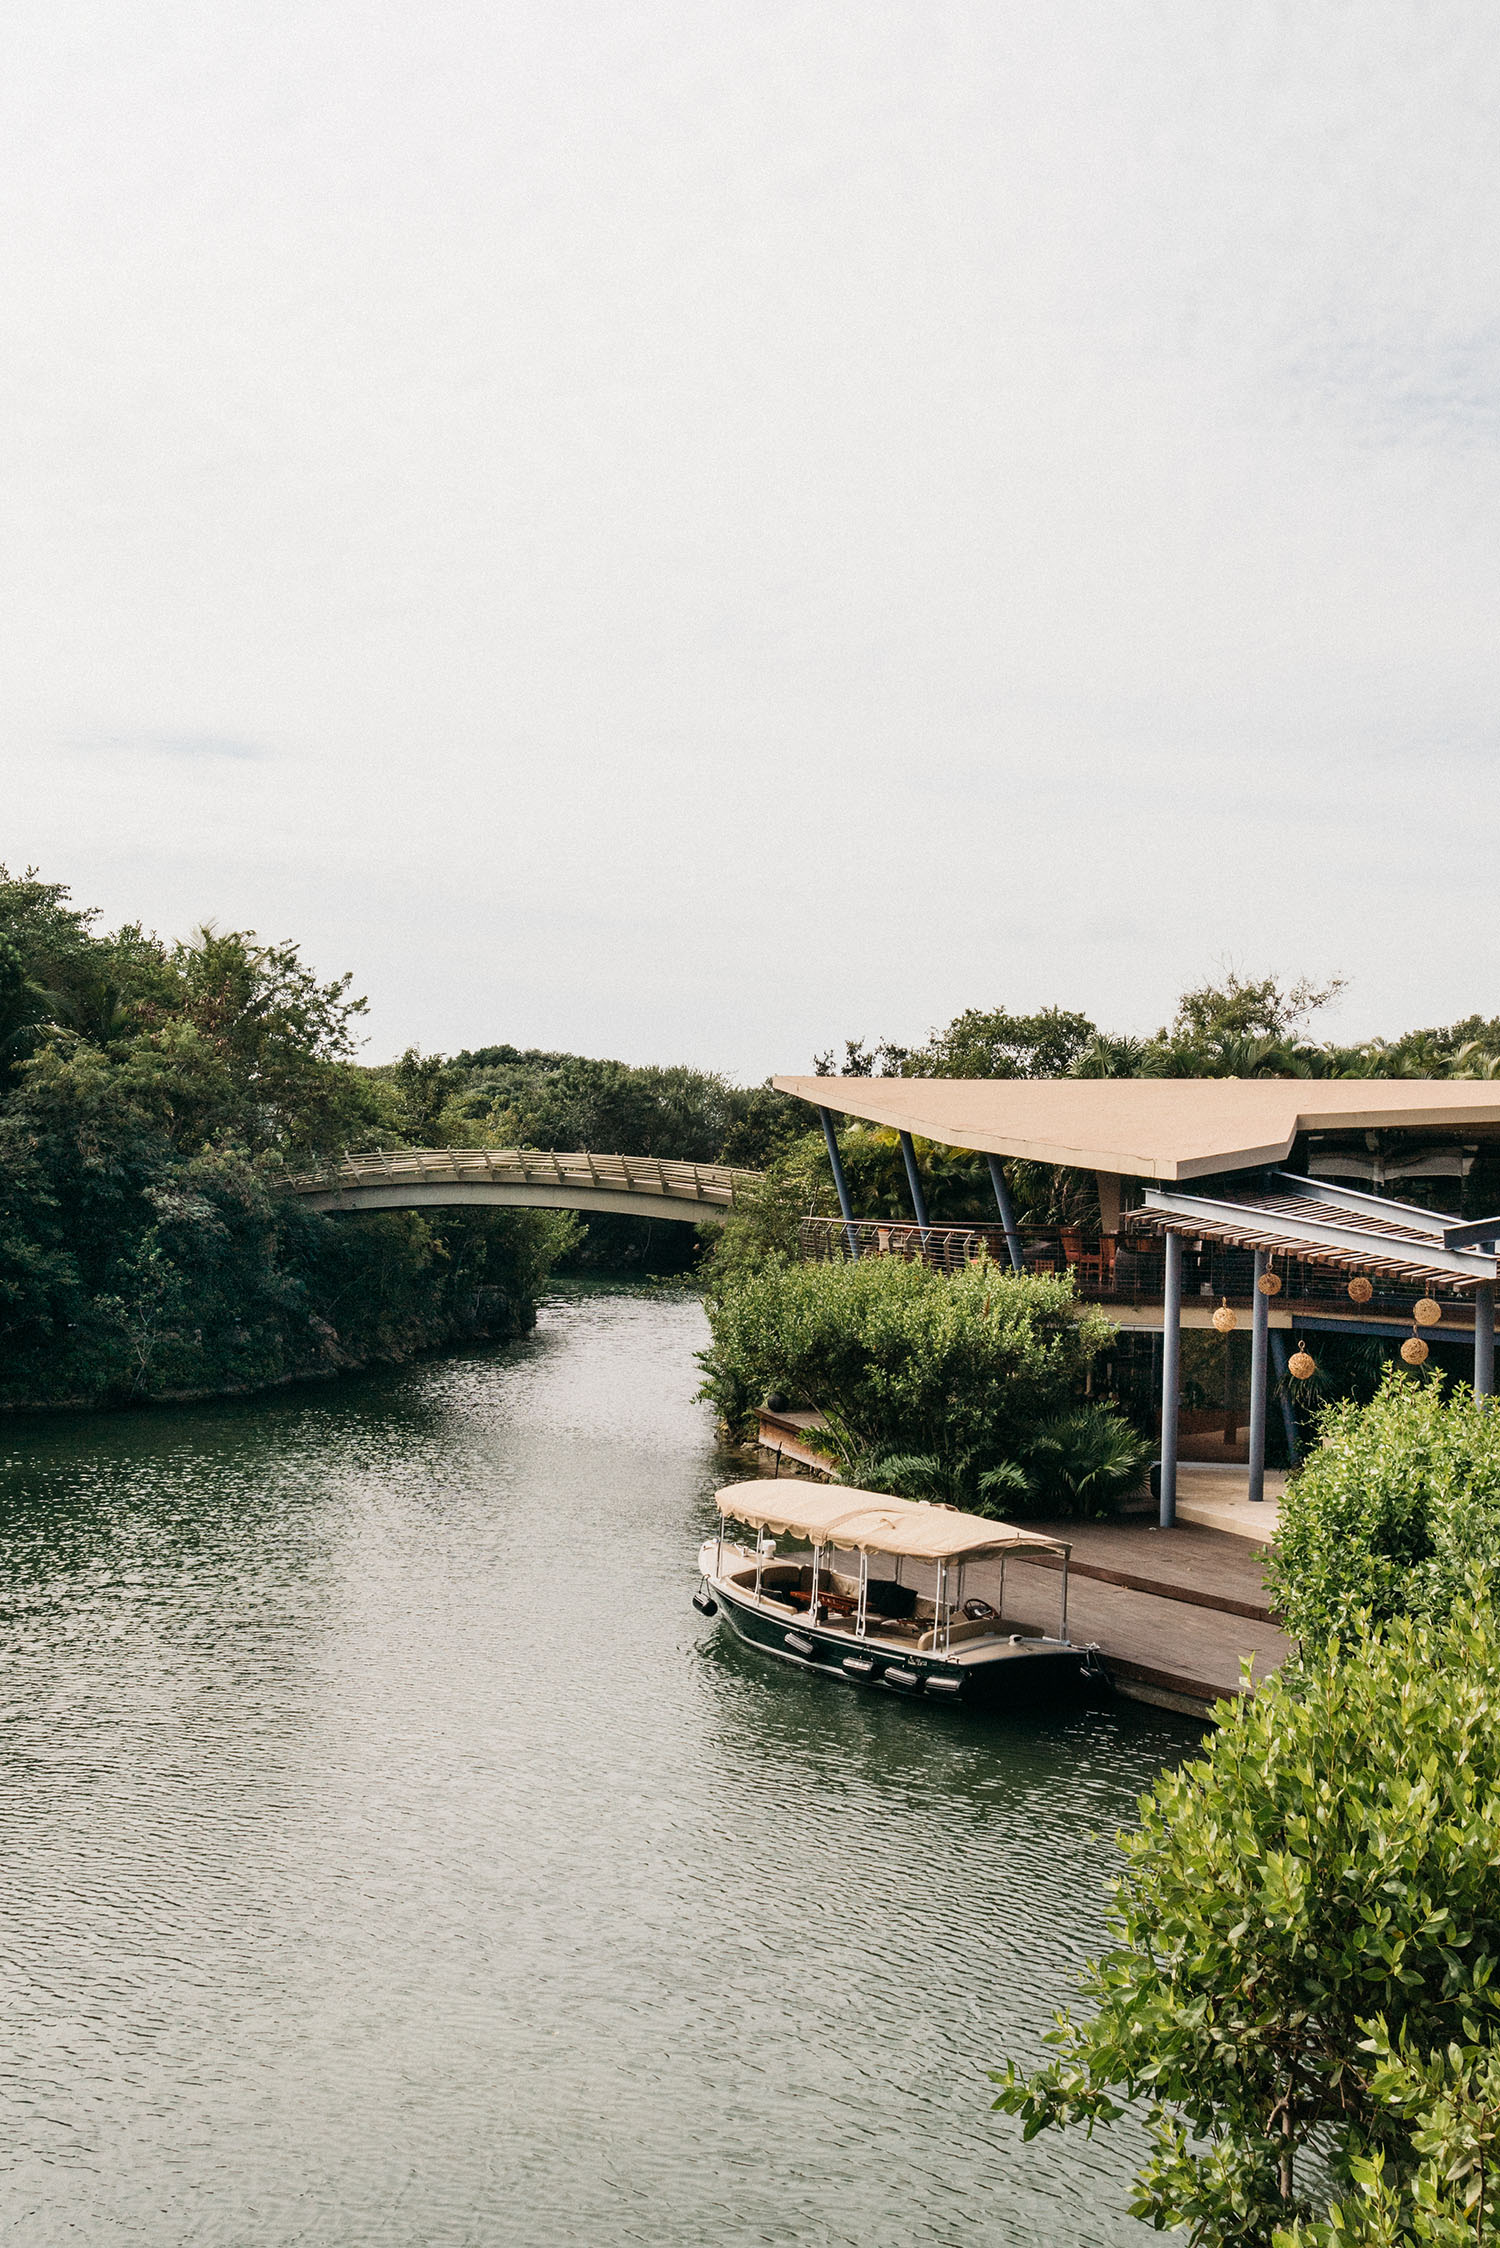 Circle line ferries are available every half hour to bring you to any of the other resorts in the Mayakoba complex – Fairmont, Andaz, and Banyan Tree. Each resort was designed to enhance the natural environment for visitors to truly appreciate the beauty of the Riviera Maya.